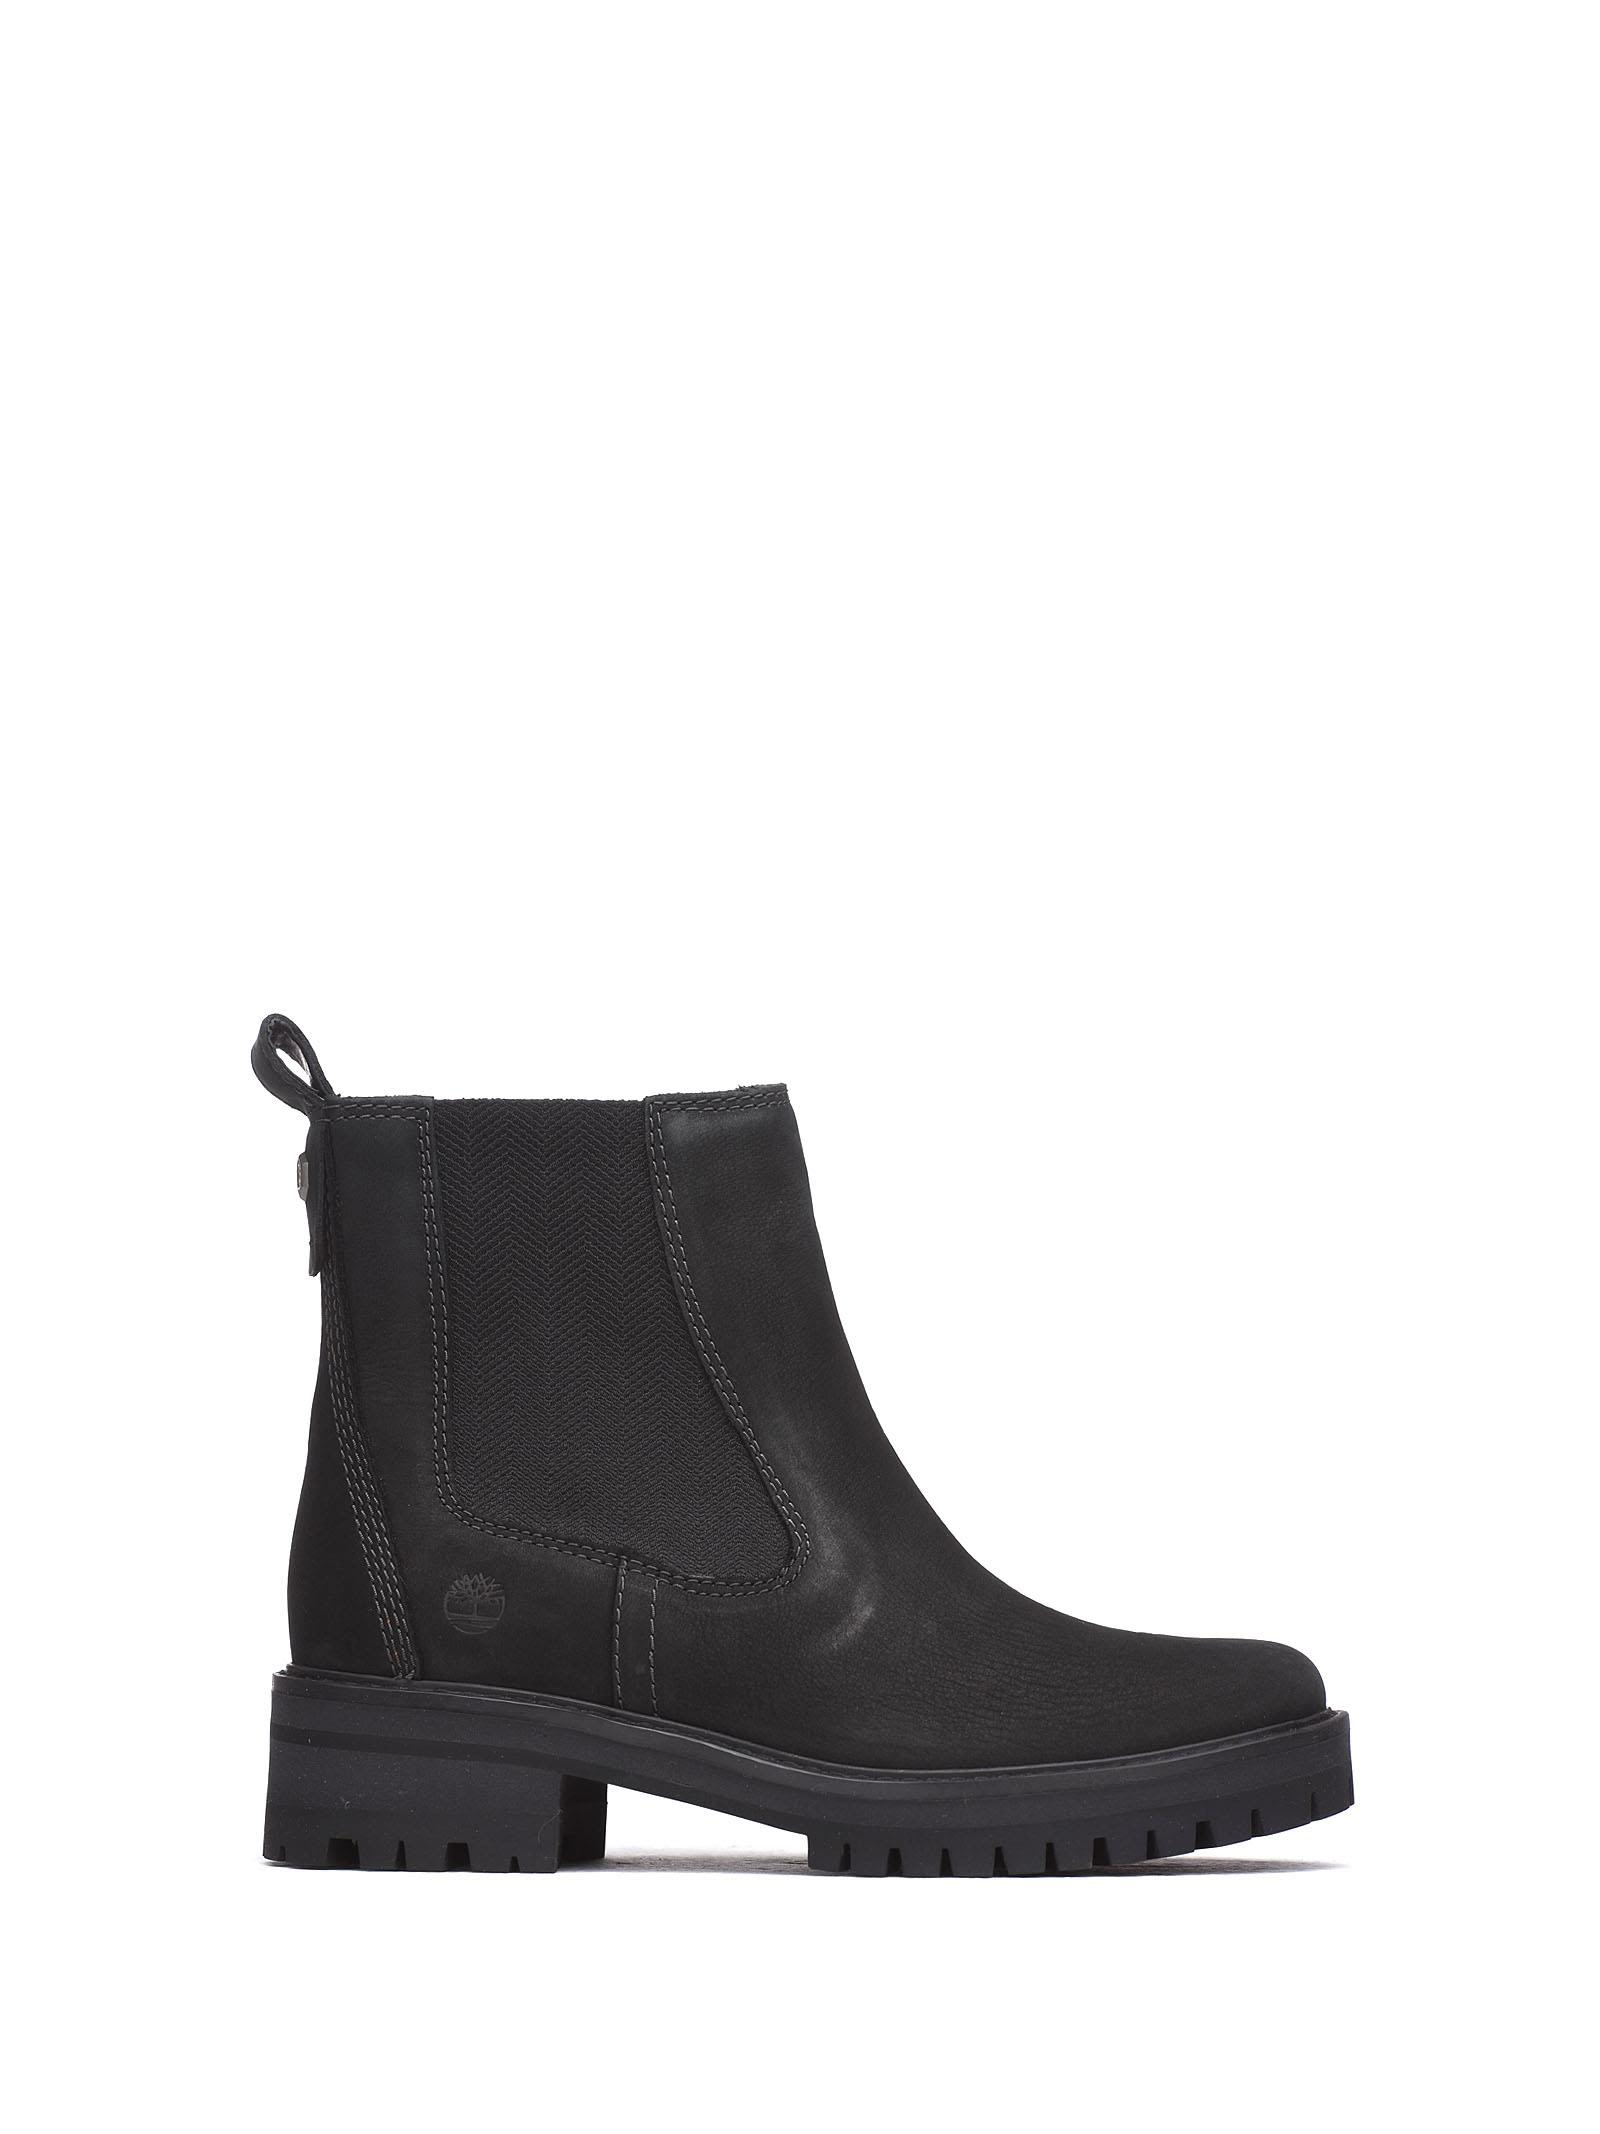 Timberland | Timberland Ankle Boots In Black Nabuk | Clouty